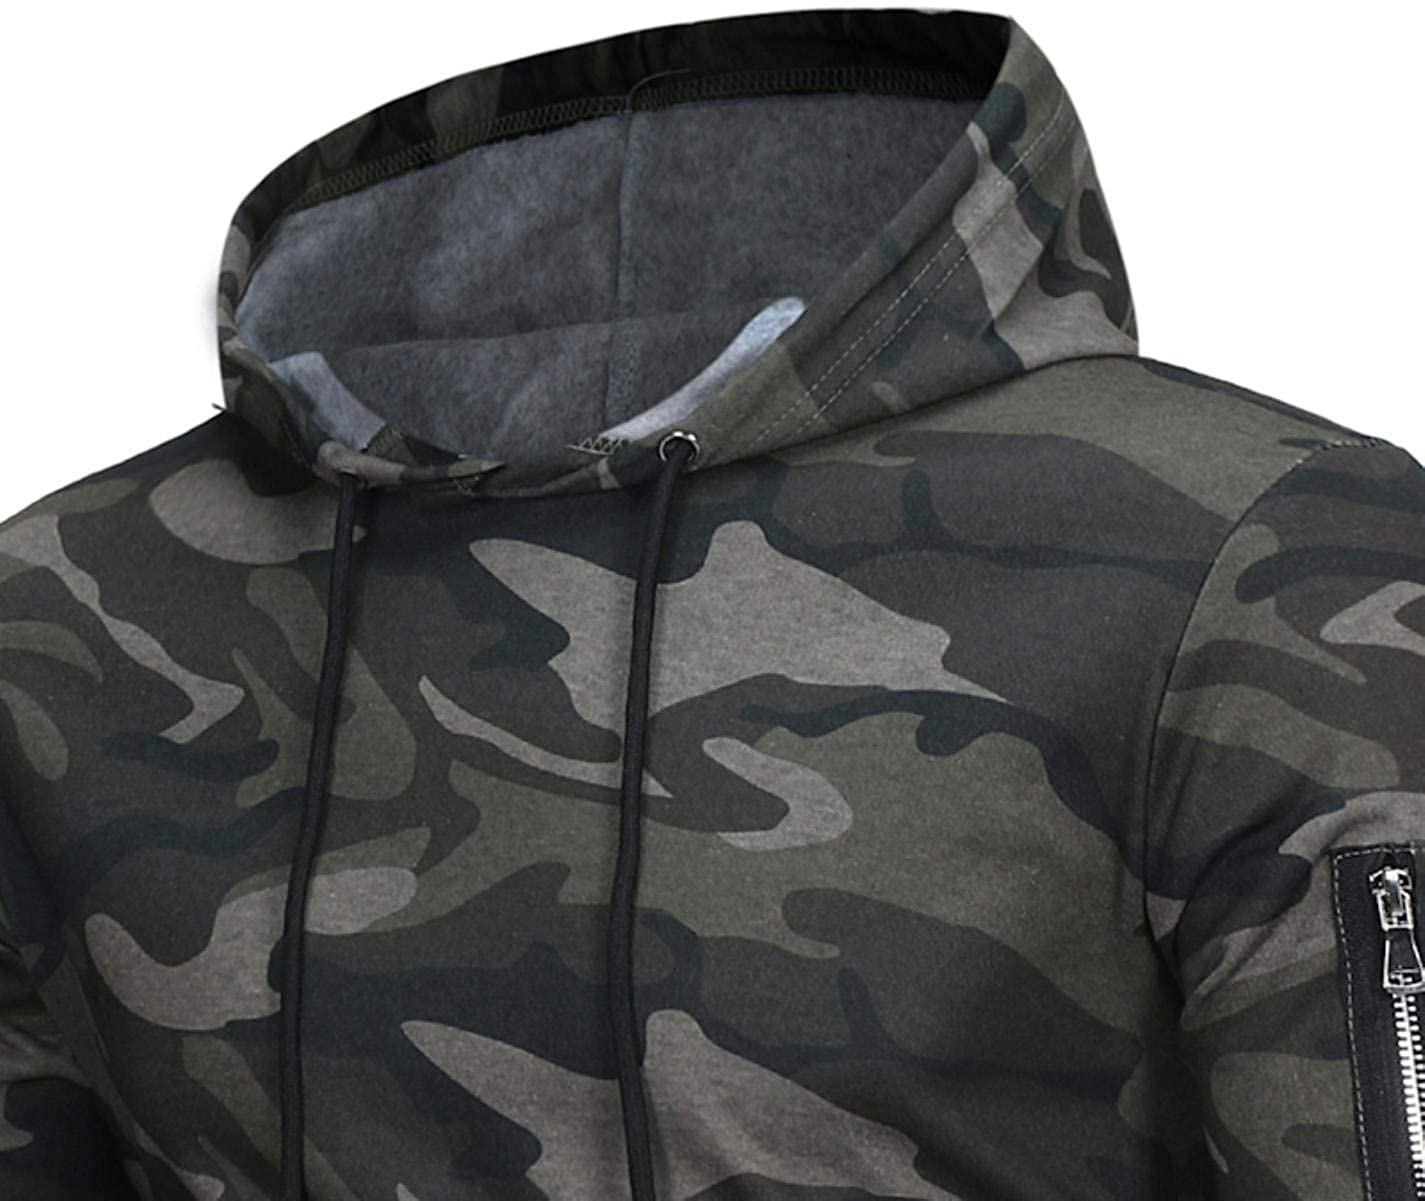 NnPWW Men Fashion Camouflage Sweatshirt Tracksuit Casual Pullover Hooded Christmas